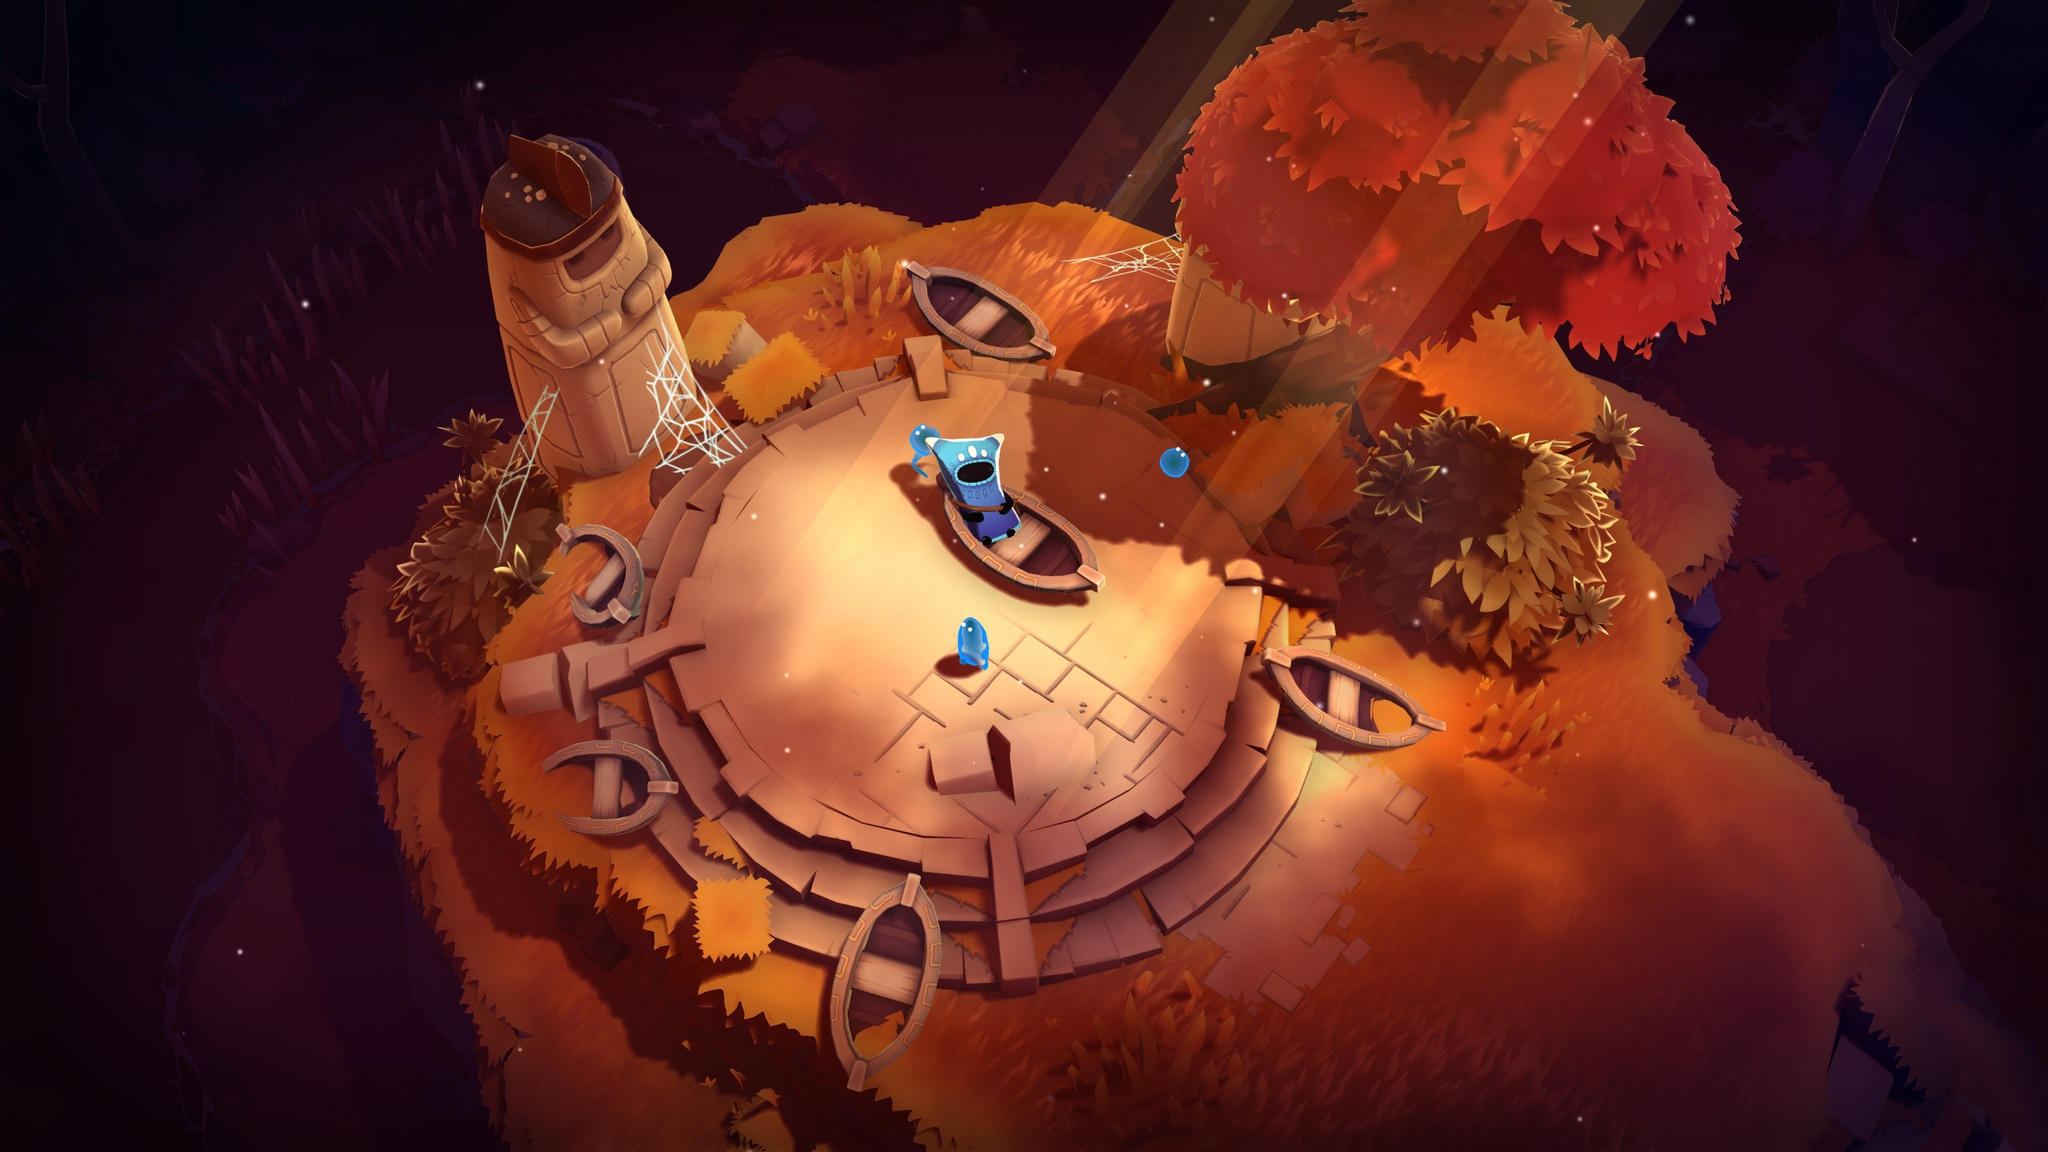 The Last Campfire is a surprise new adventure from Hello Games